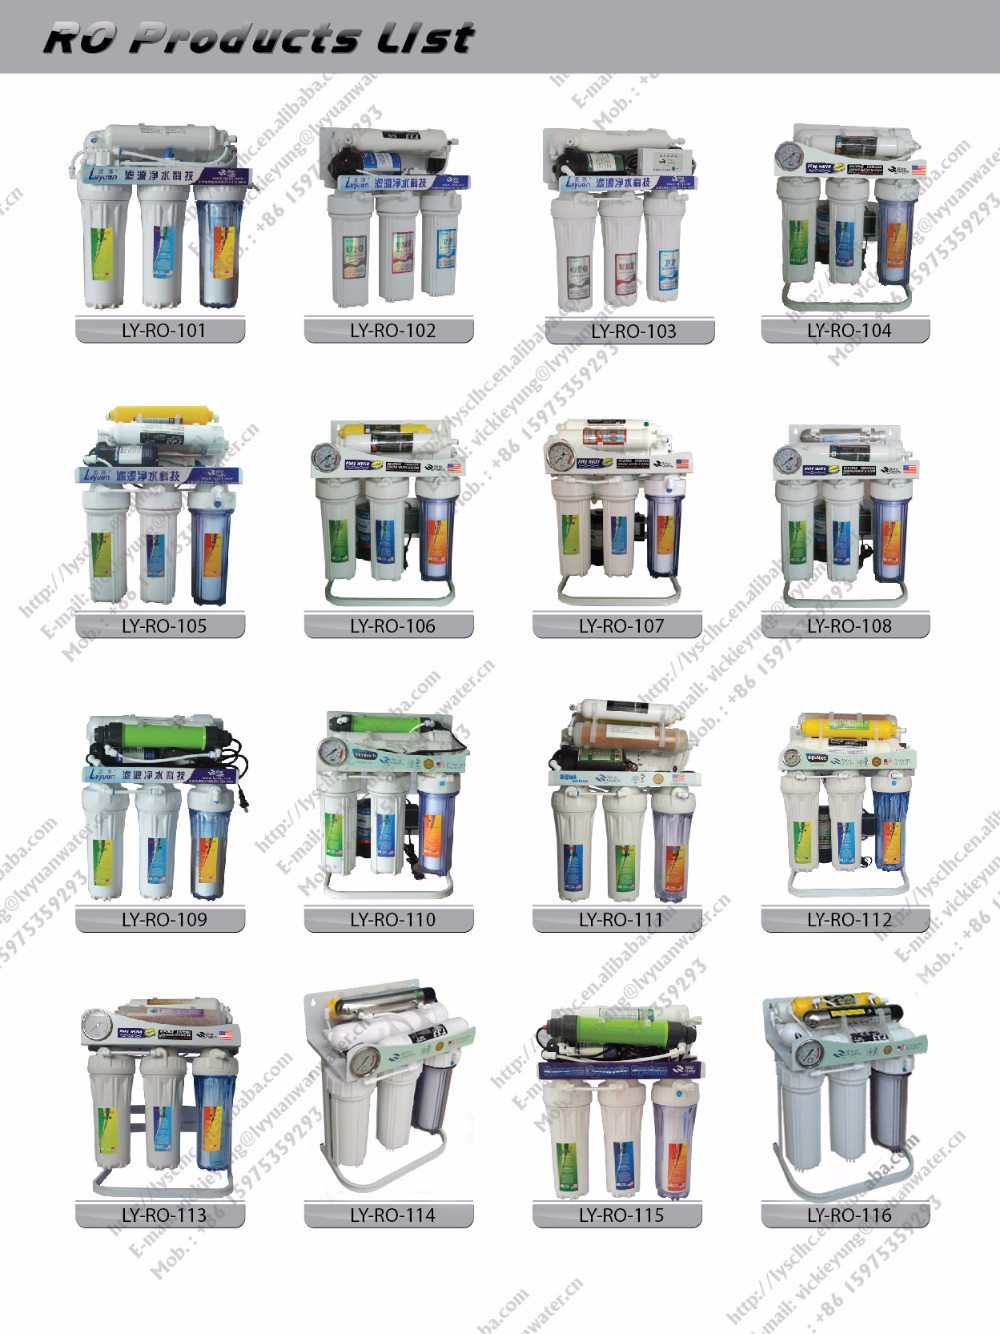 Different models ly ro 106 water filters system for hometype of home